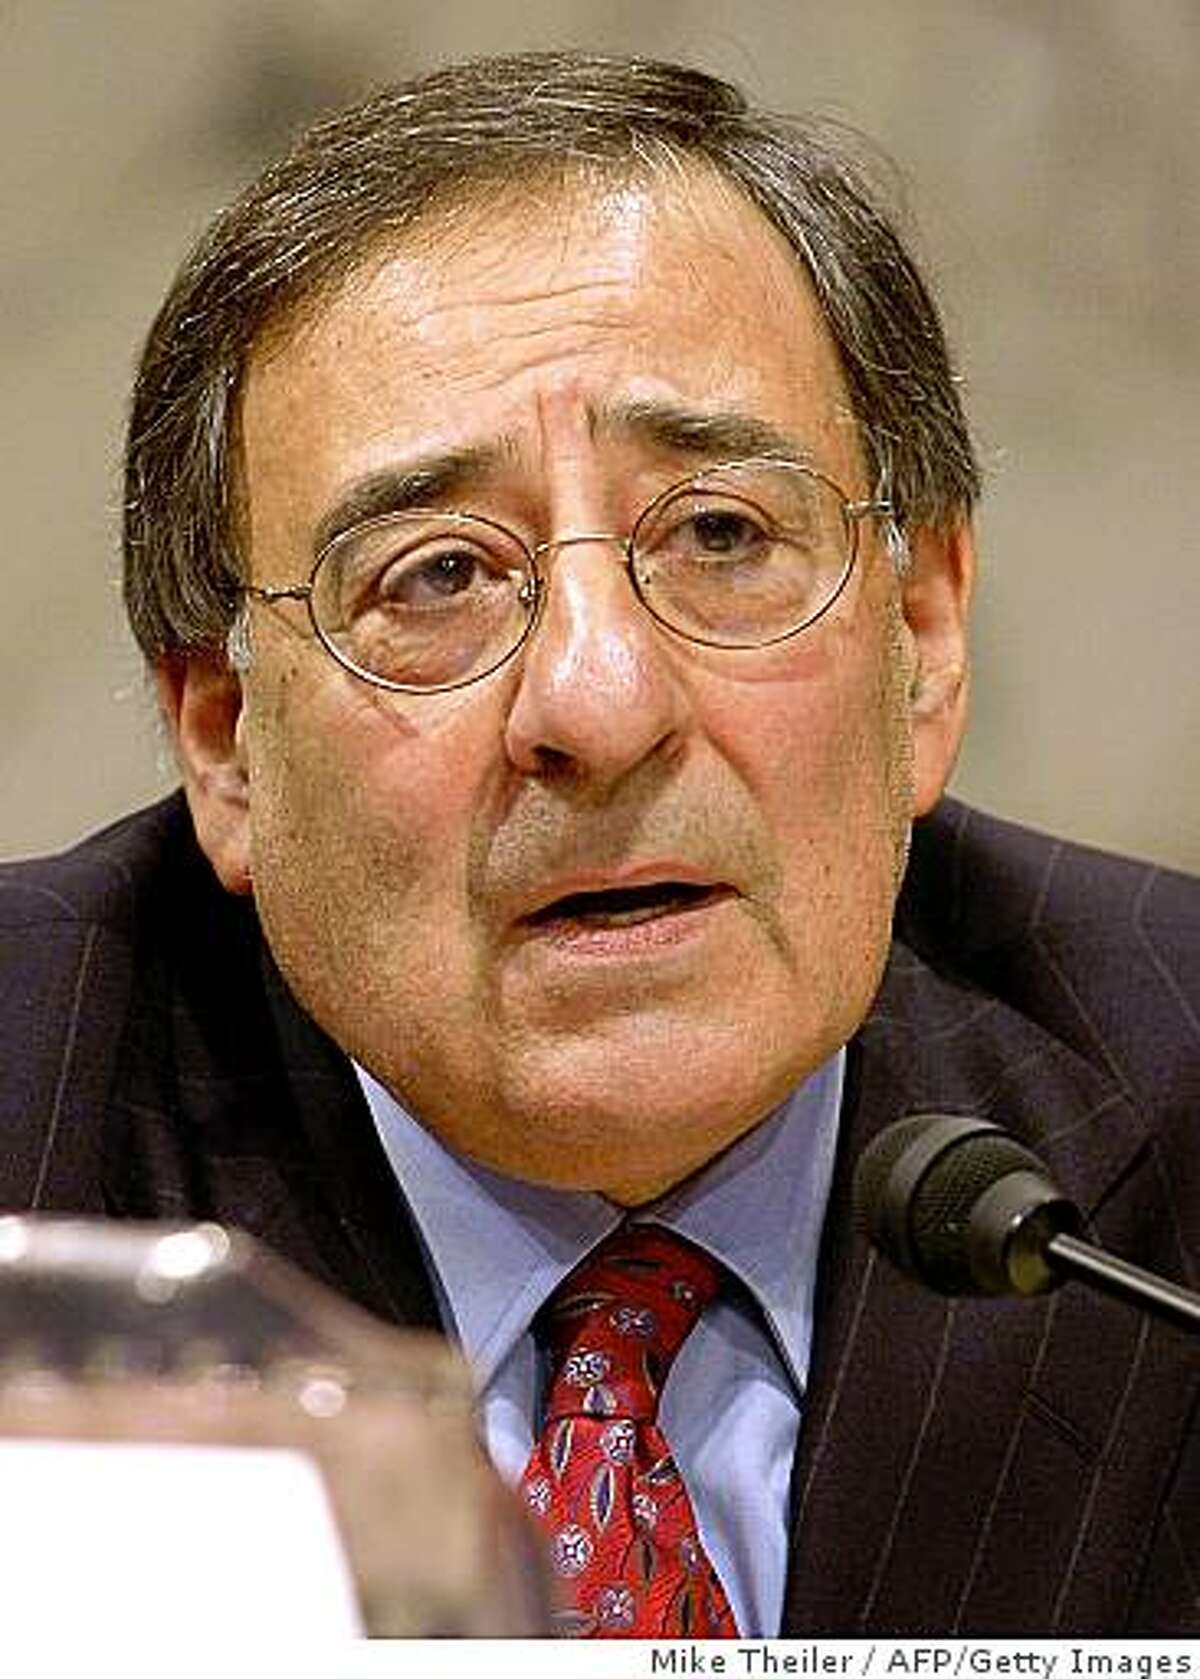 Washington, UNITED STATES: Iraq Study Group member and former Clinton Chief of Staff Leon E. Panetta makes remarks during a news conference after the Iraq Study Group delivered their report to President Bush and Congress, 06 December 2006 in Washington,DC. The bi-partisan group reported that the situation in Iraq is